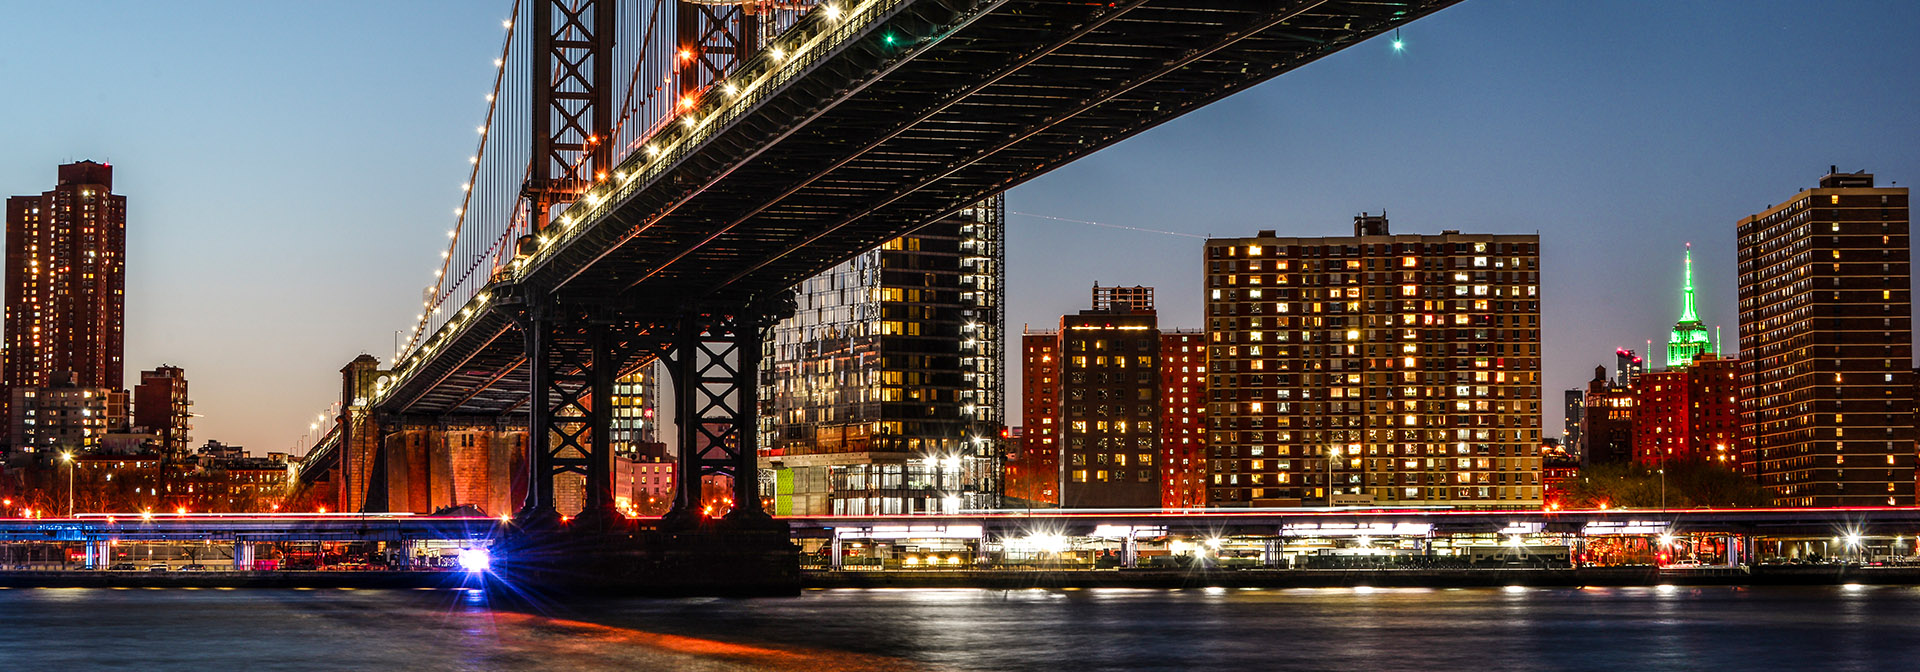 manhattanbridge_night